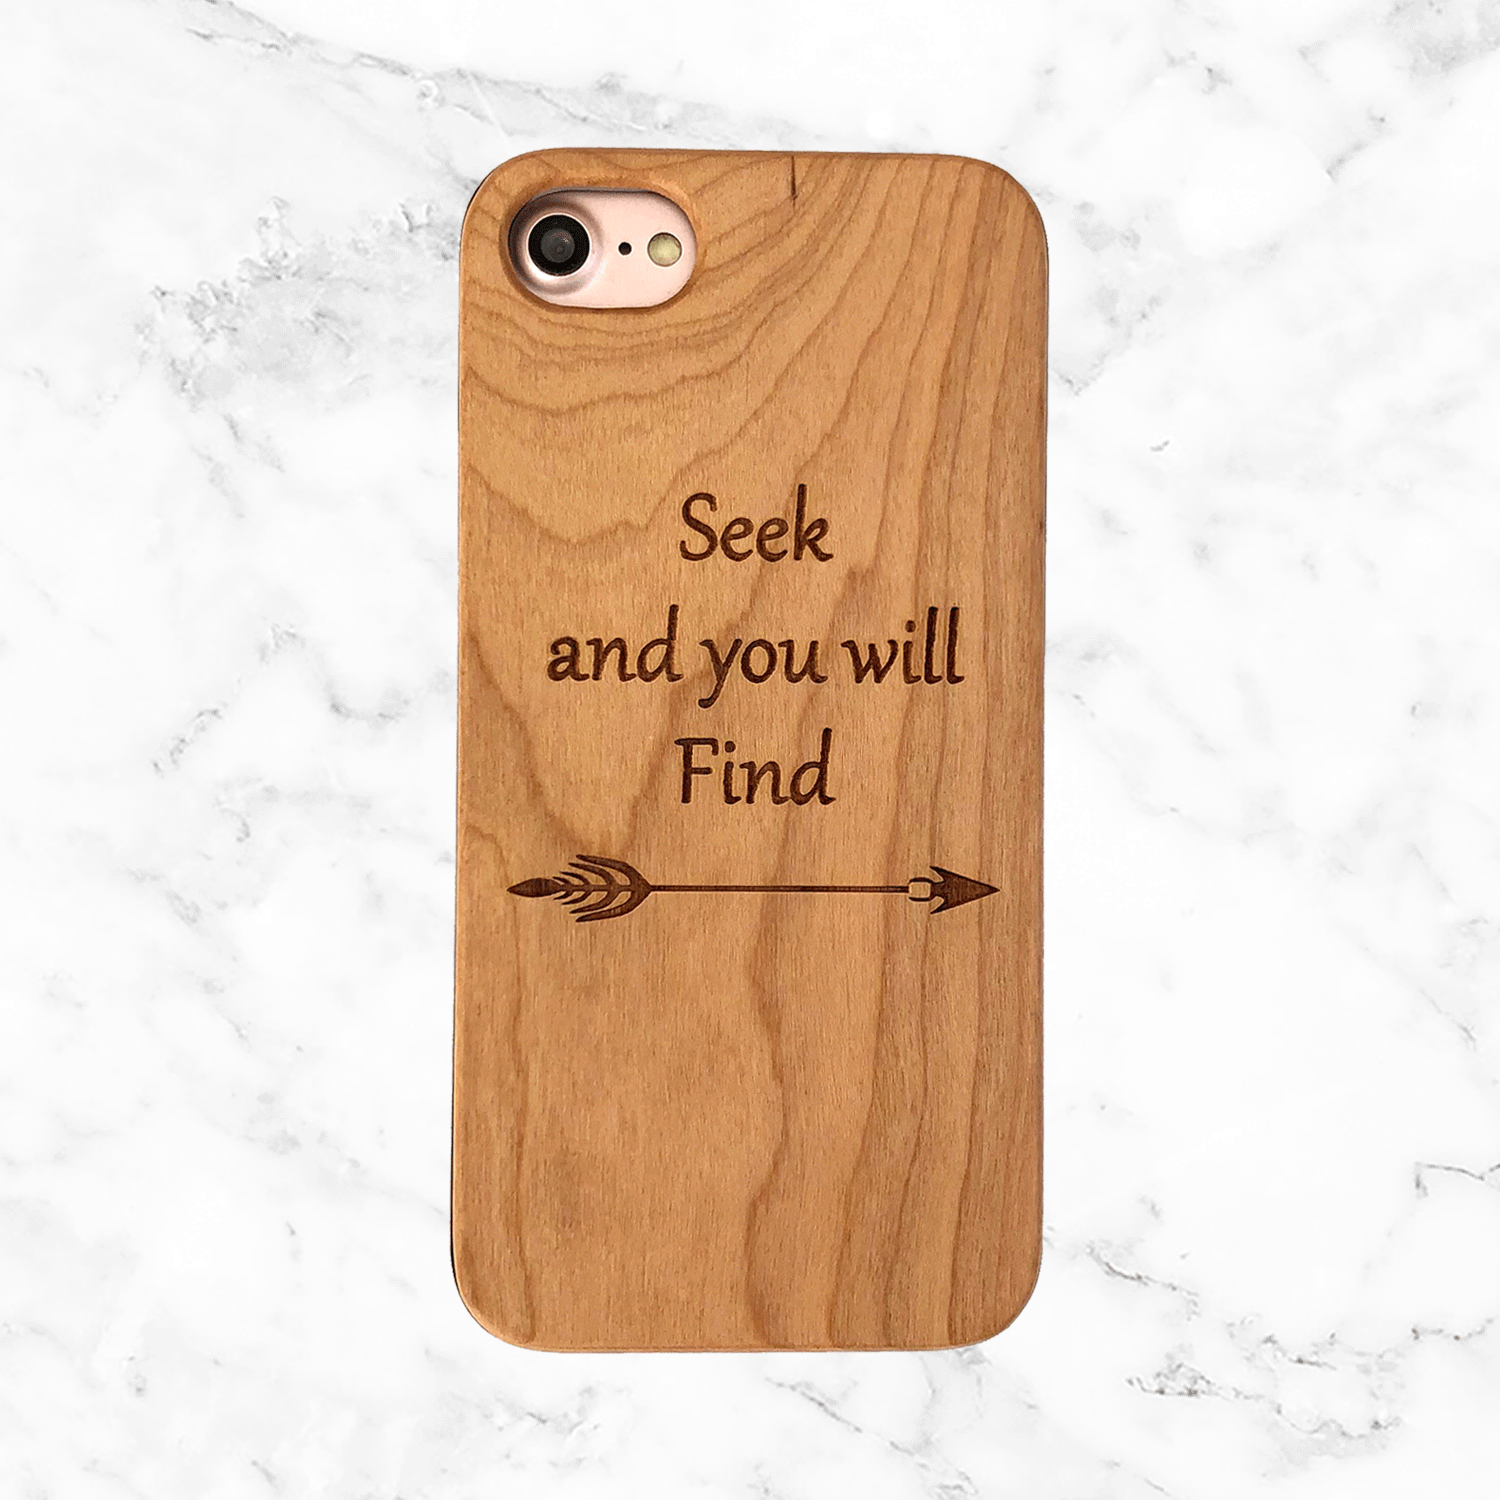 Seek and You Will Find - Wood Phone Case